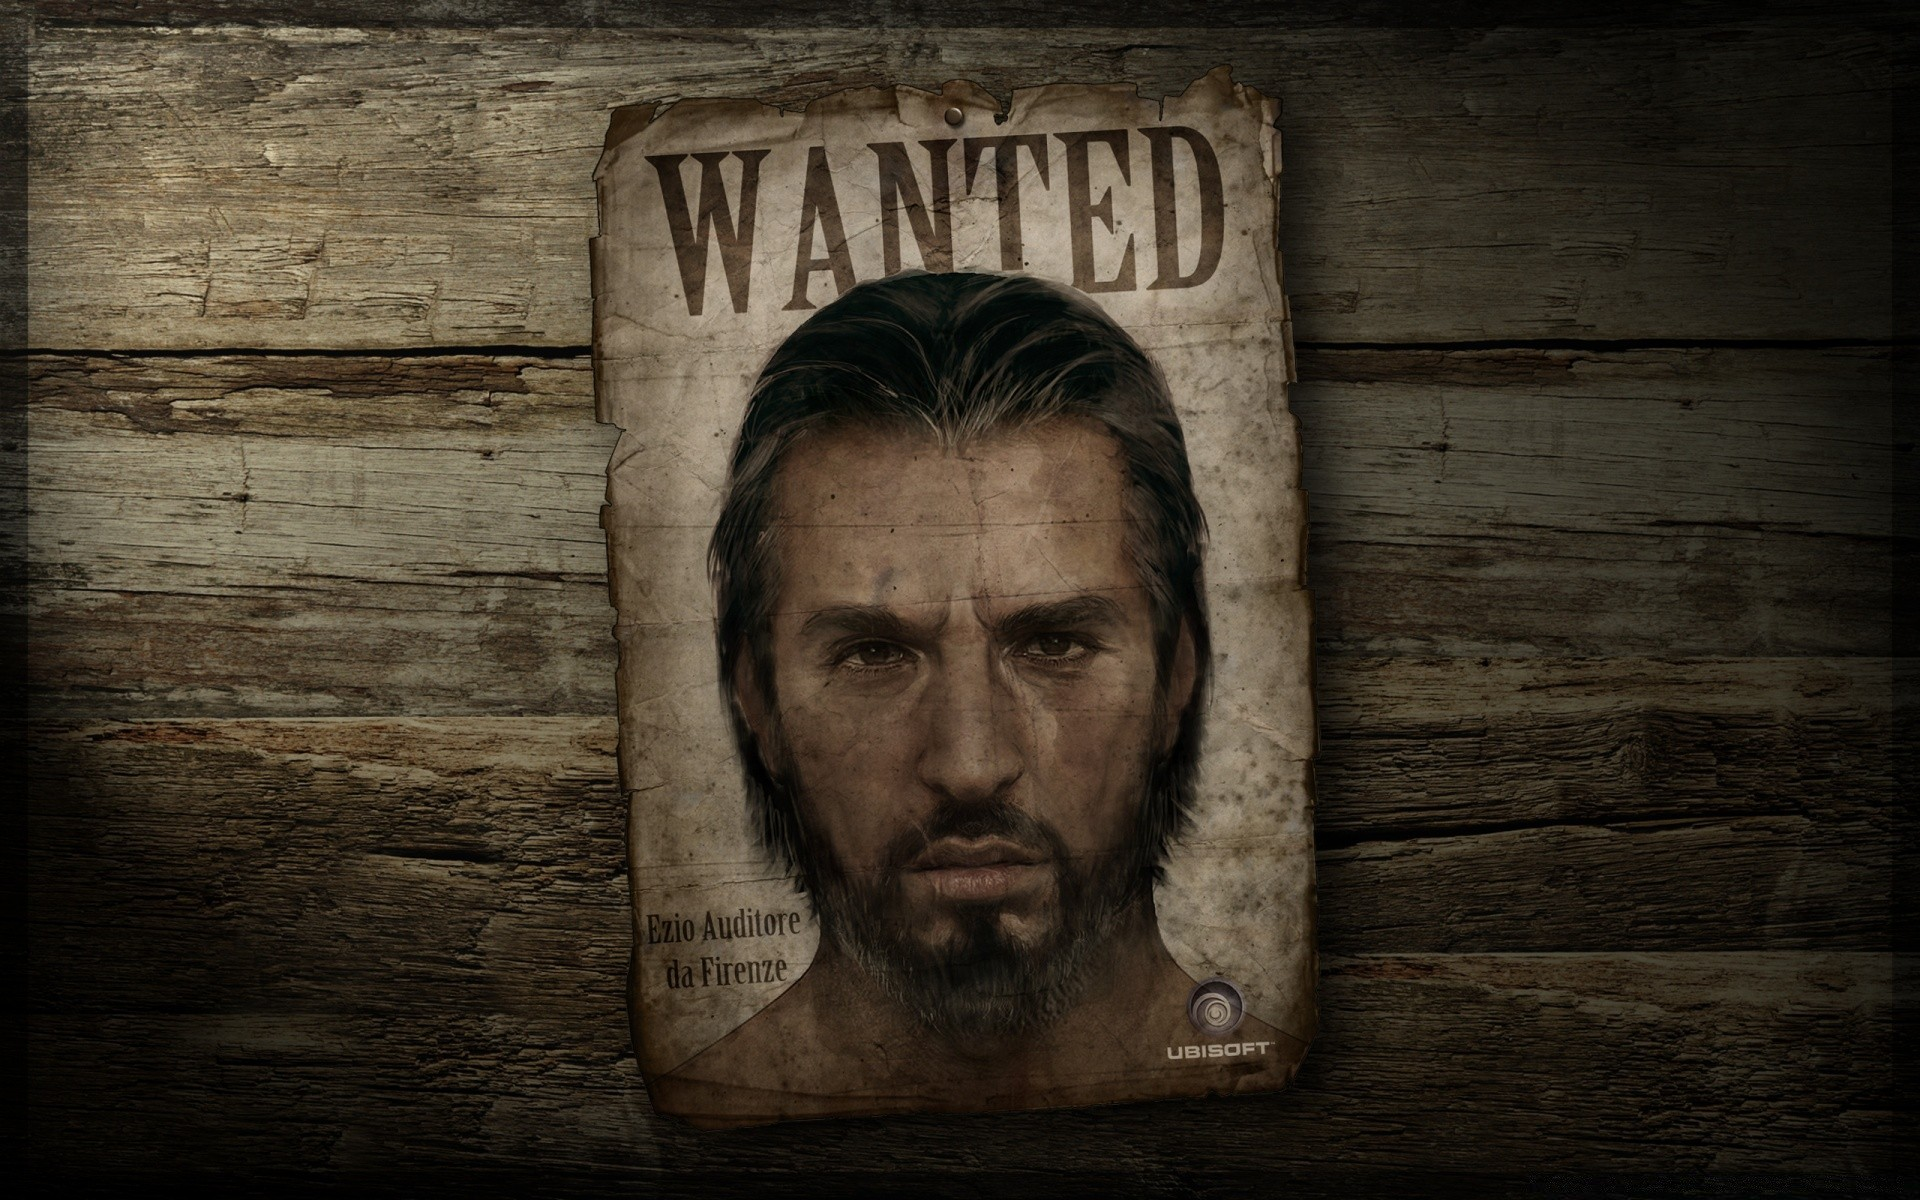 Assassin S Creed Wanted Poster Free Wallpapers